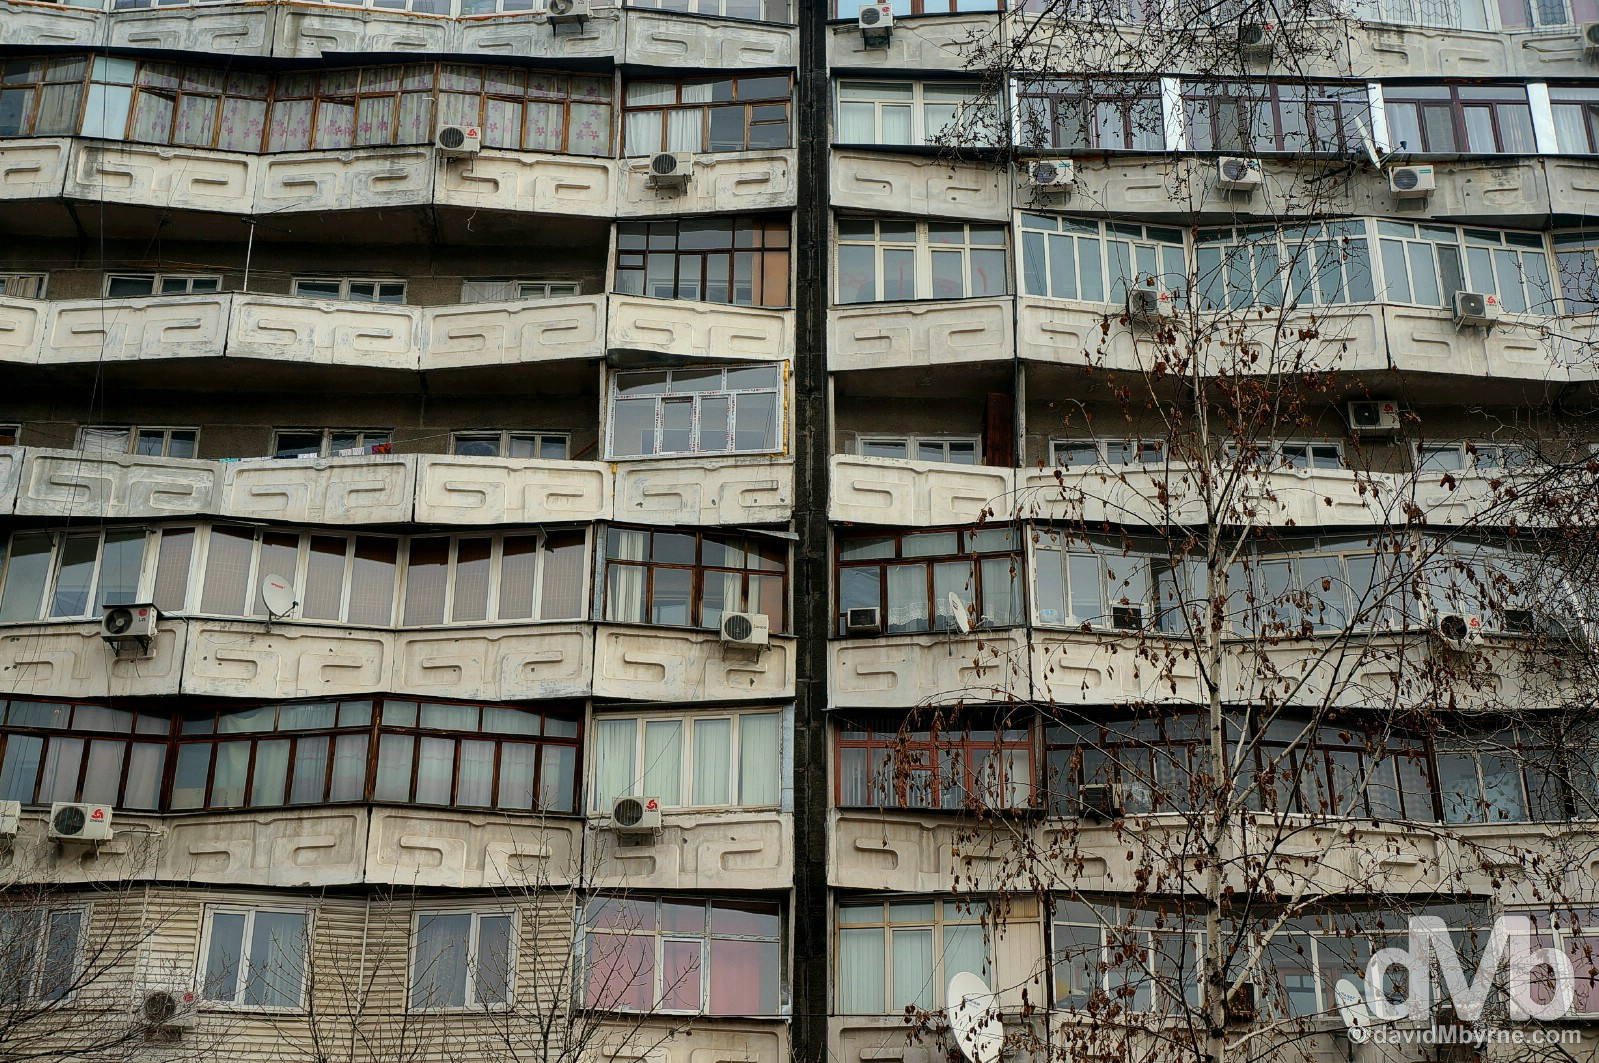 Apartment buildings on Abdrahmanov Street (Sovetskaya Street) in Bishkek, Kyrgyzstan. February 23, 2015.